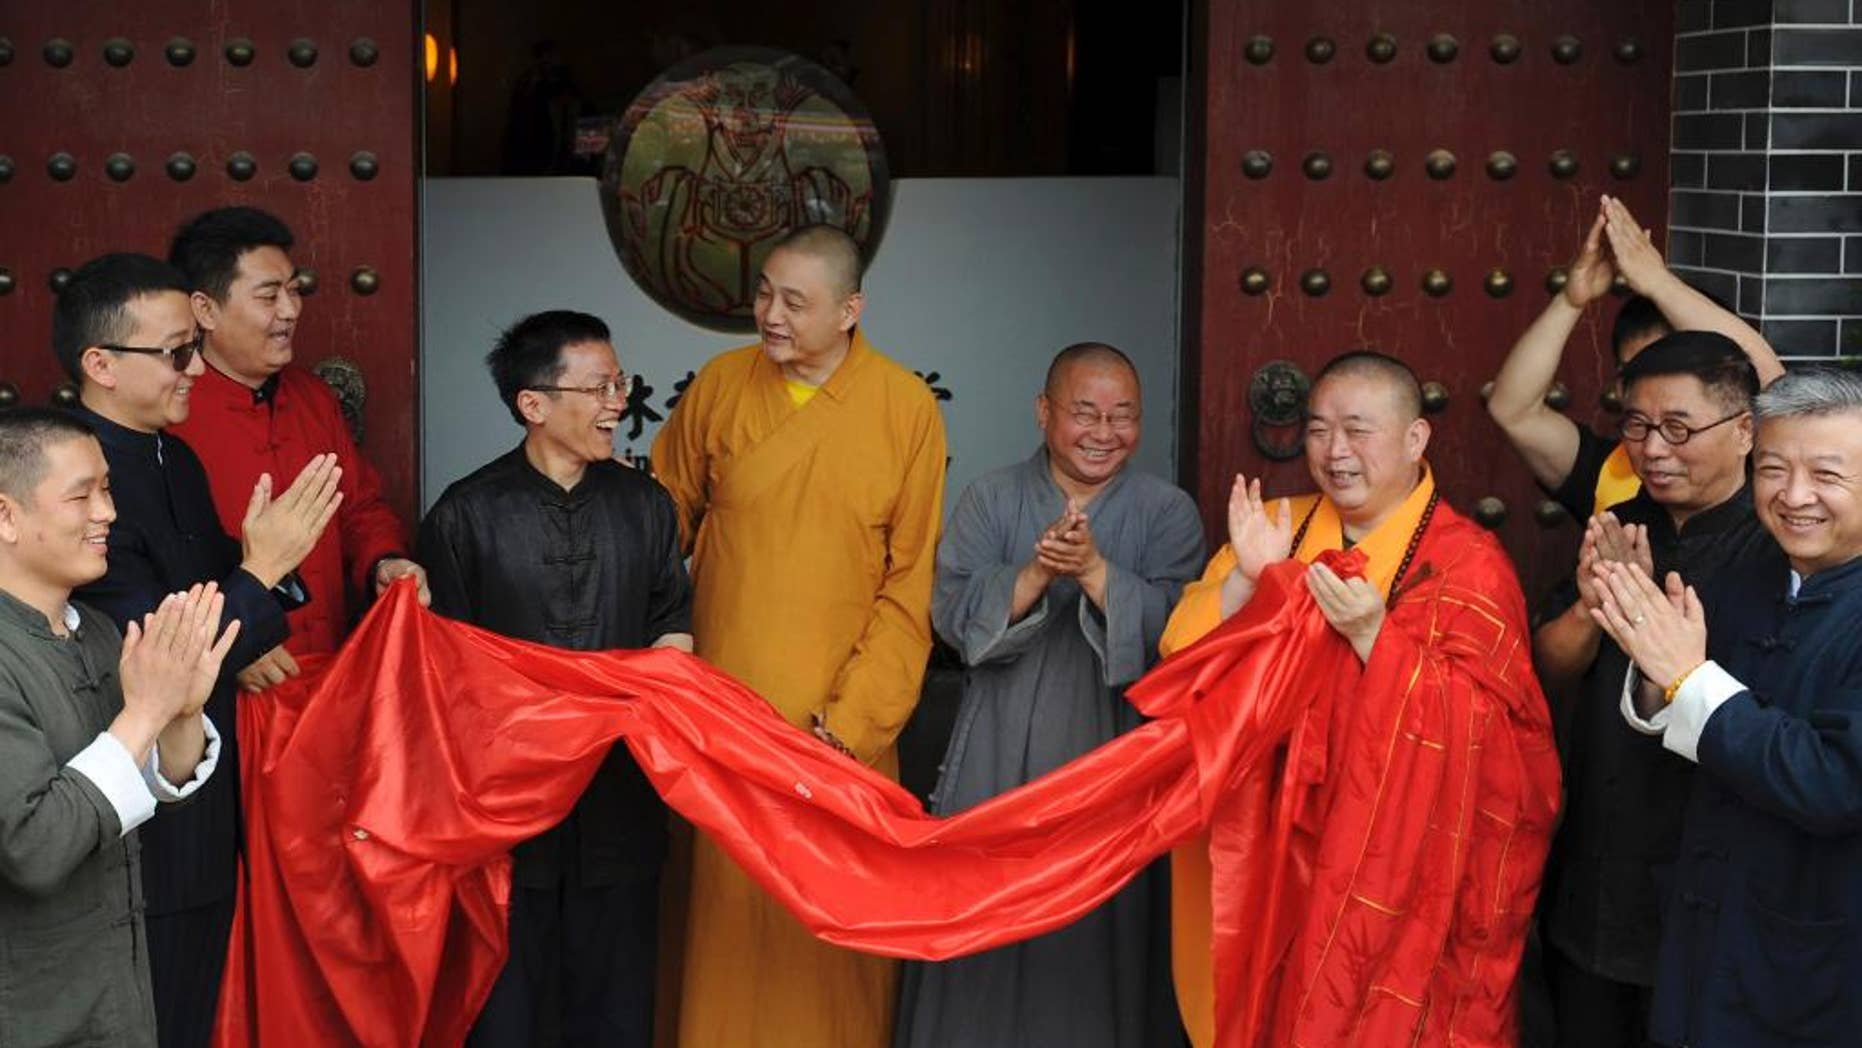 In this photo taken Sunday June 28, 2015, Shi Yongxin, third from right in yellow and red robes, abbot of the Shaolin Temple, attends the opening ceremony of an urban zen center named Shaolin Chan Hall in Xi'an in northwest China's Shaanxi province.  Chinese authorities are investigating allegations of misbehavior made online against the controversial abbot of China's famed Shaolin Temple. (Chinatopix Via AP) CHINA OUT